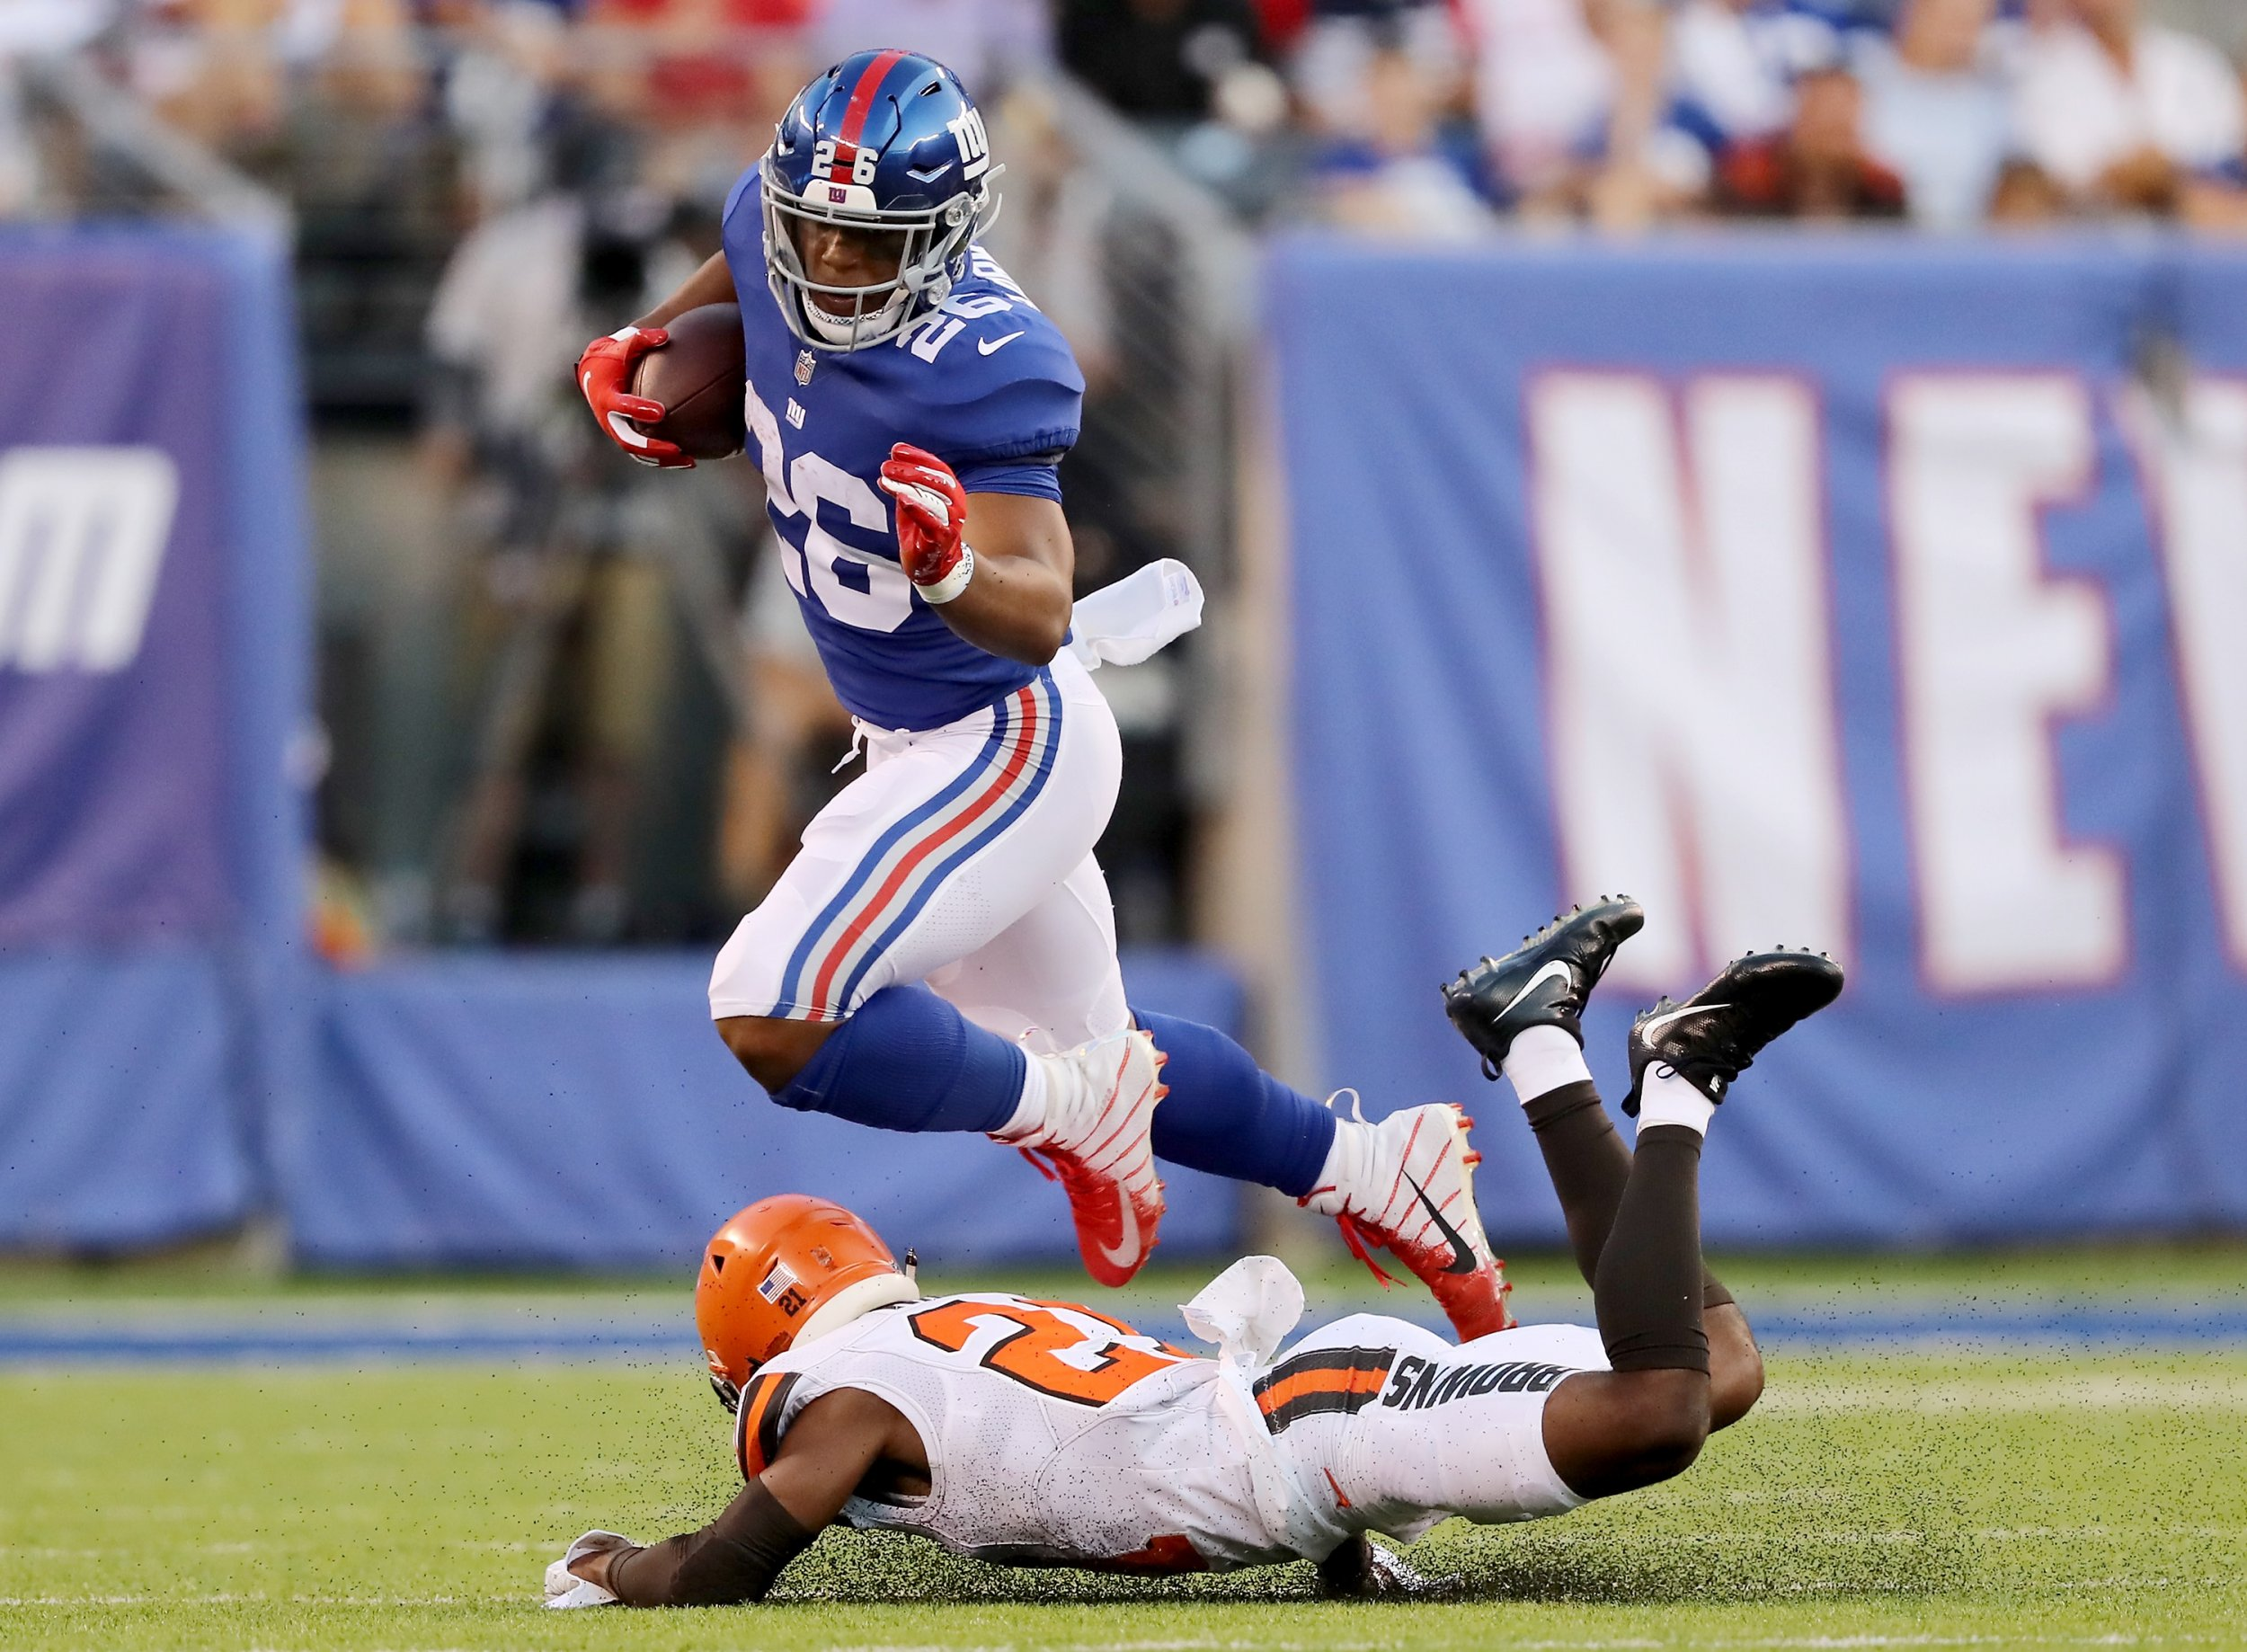 Saquon Barkley Injury: Giants Running Back Spotted With Wrap